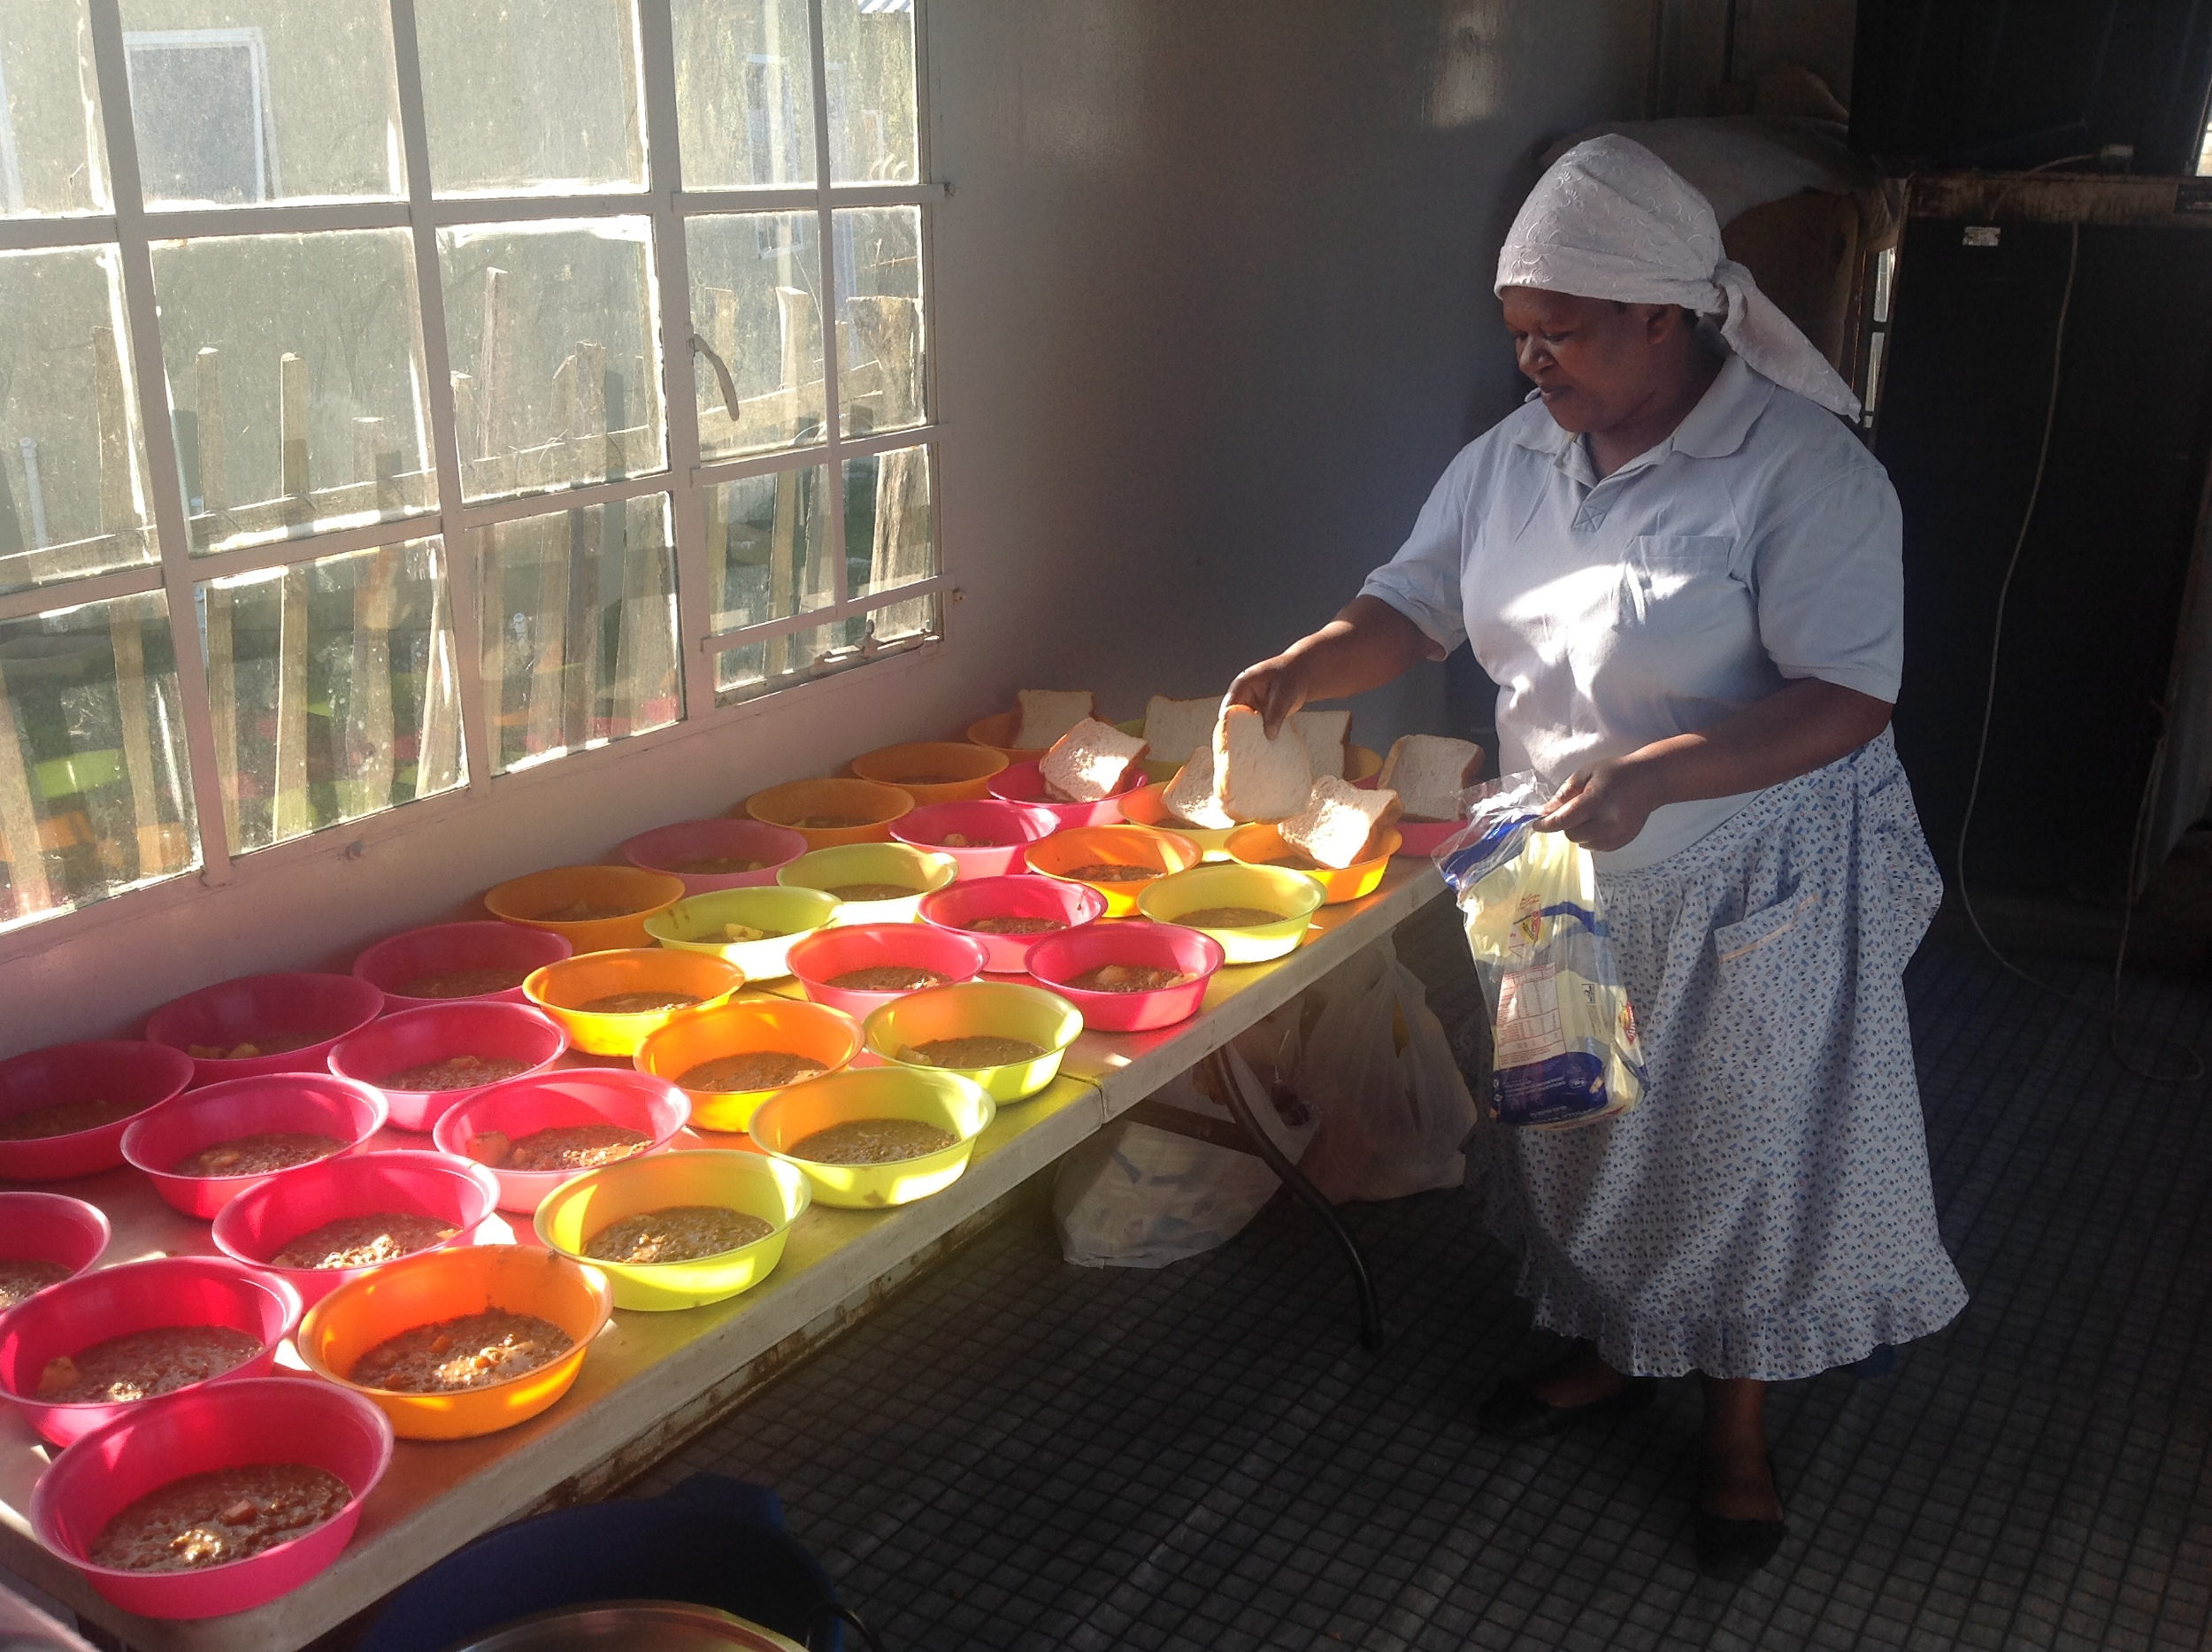 doing a feeding for undernourished children in the tnglani township of knysna, south africa